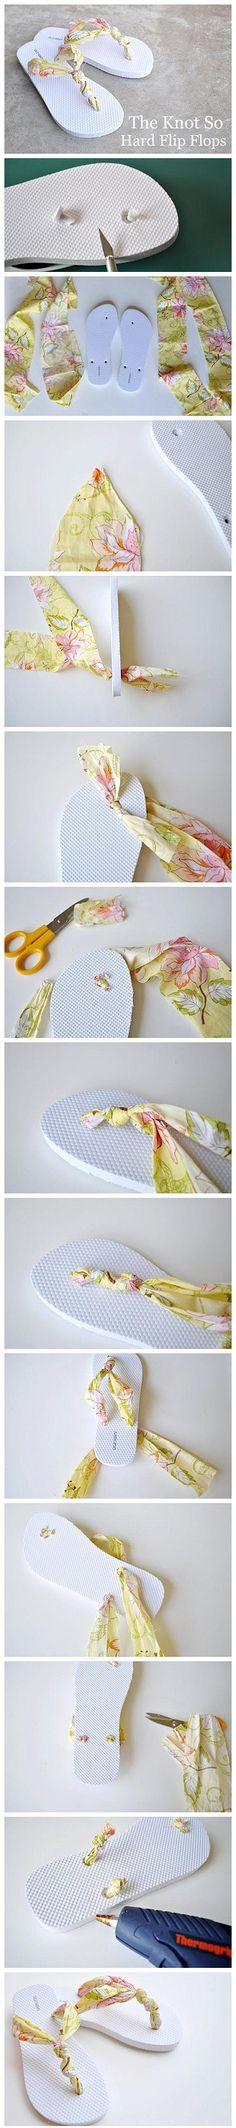 Don't know what to do with your broken flip flops?  Make new straps out of a fabric